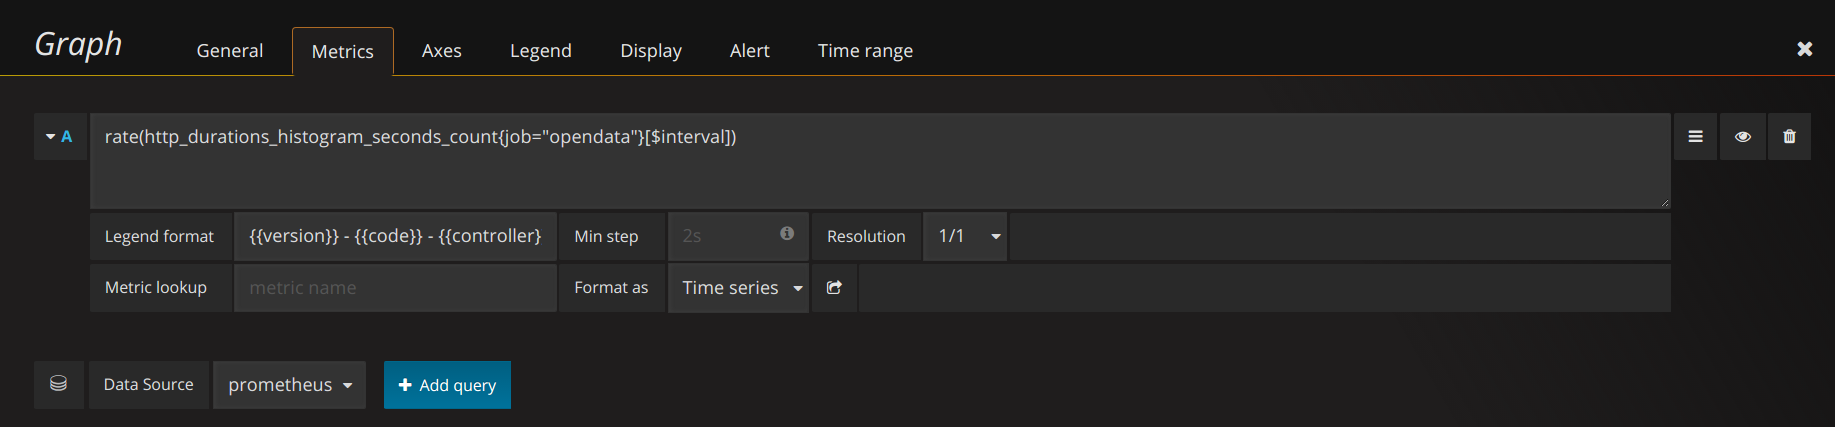 Real time metrics using Prometheus & Grafana | redByte blog